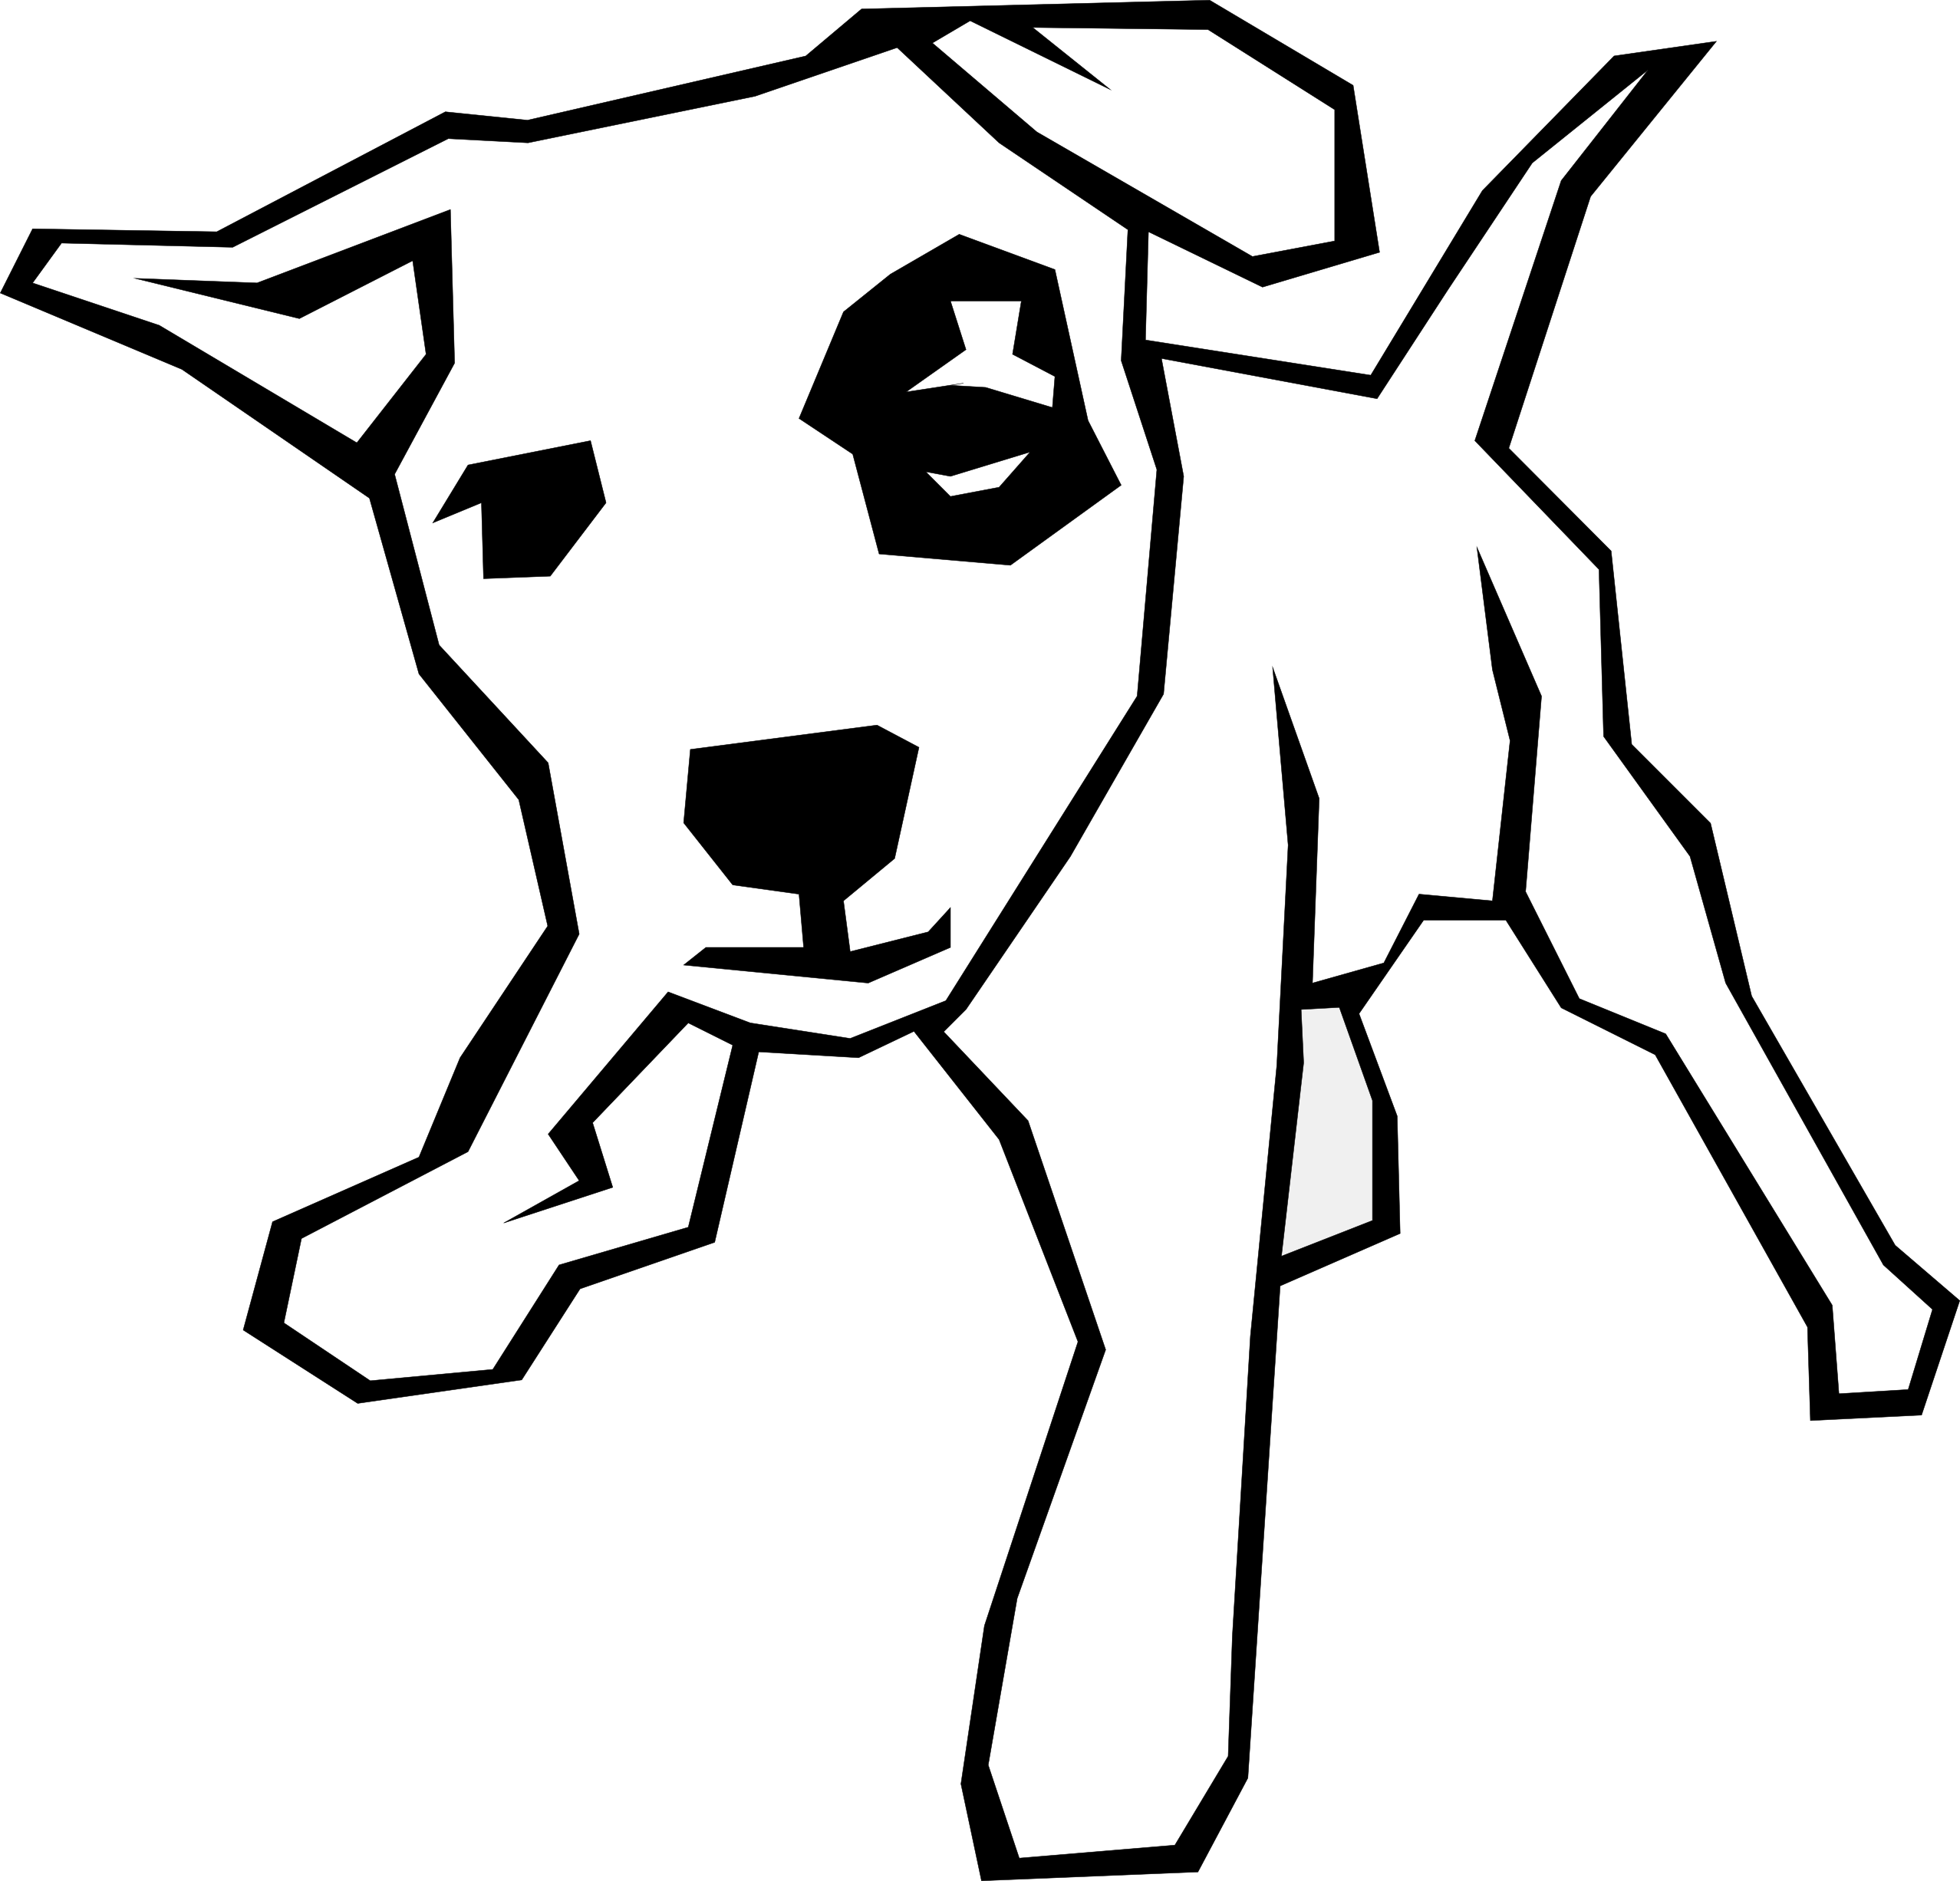 black and white dog drawing at getdrawings com free for personal rh getdrawings com black and white dog bone clipart black and white dog clipart free